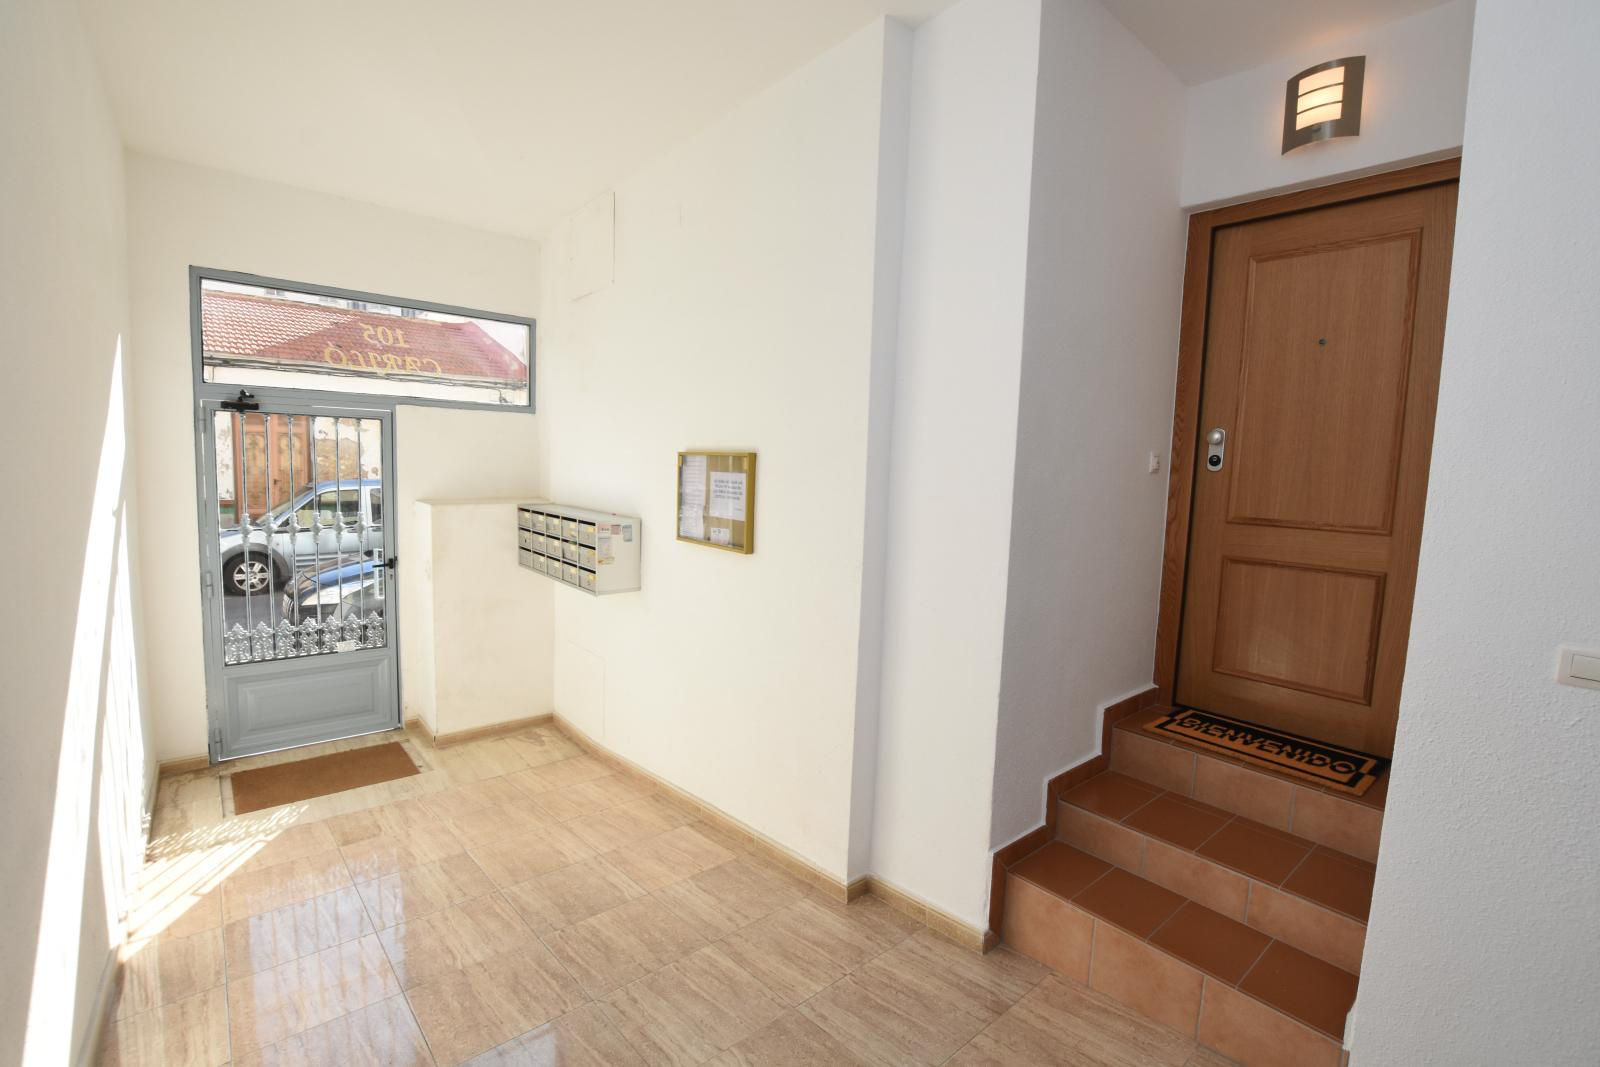 Incredible For Sale 2 Bedroom Apartment 2 Full Bathrooms Newly Download Free Architecture Designs Scobabritishbridgeorg